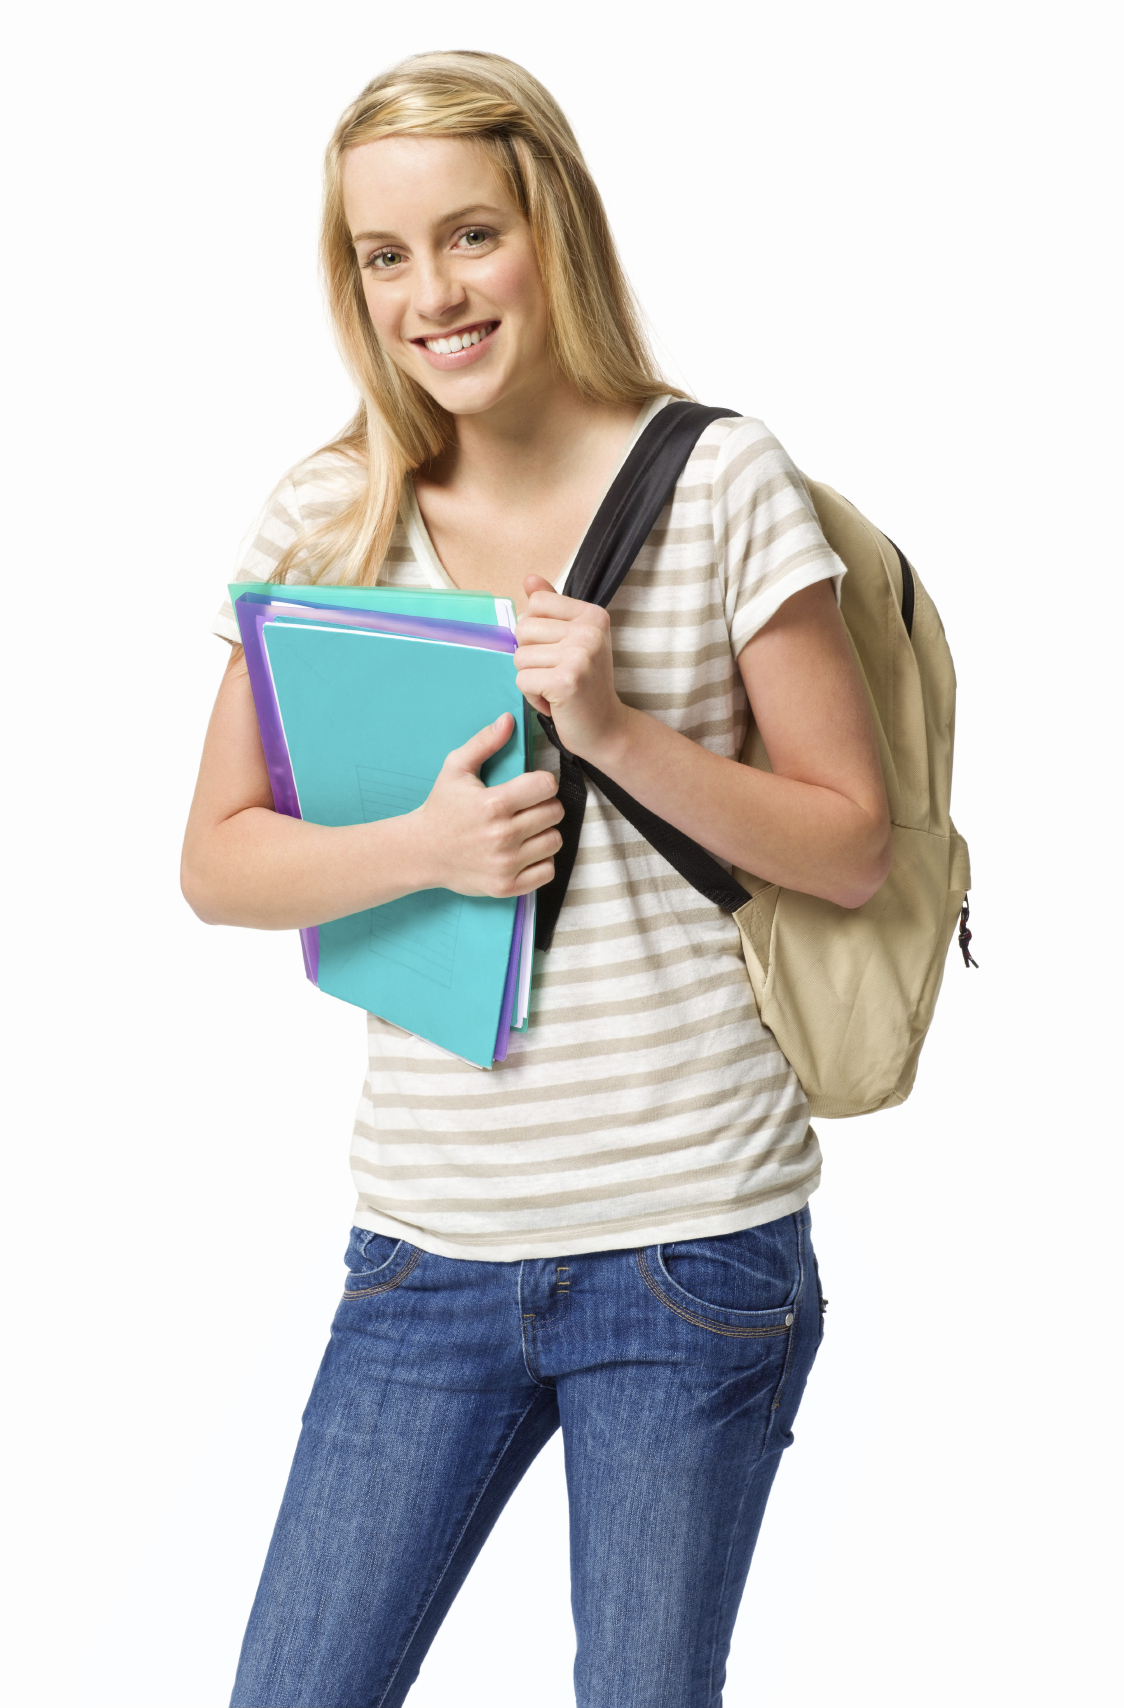 Blond female high school student poses with a backpack and school supplies. Vertical shot. Isolated on white.